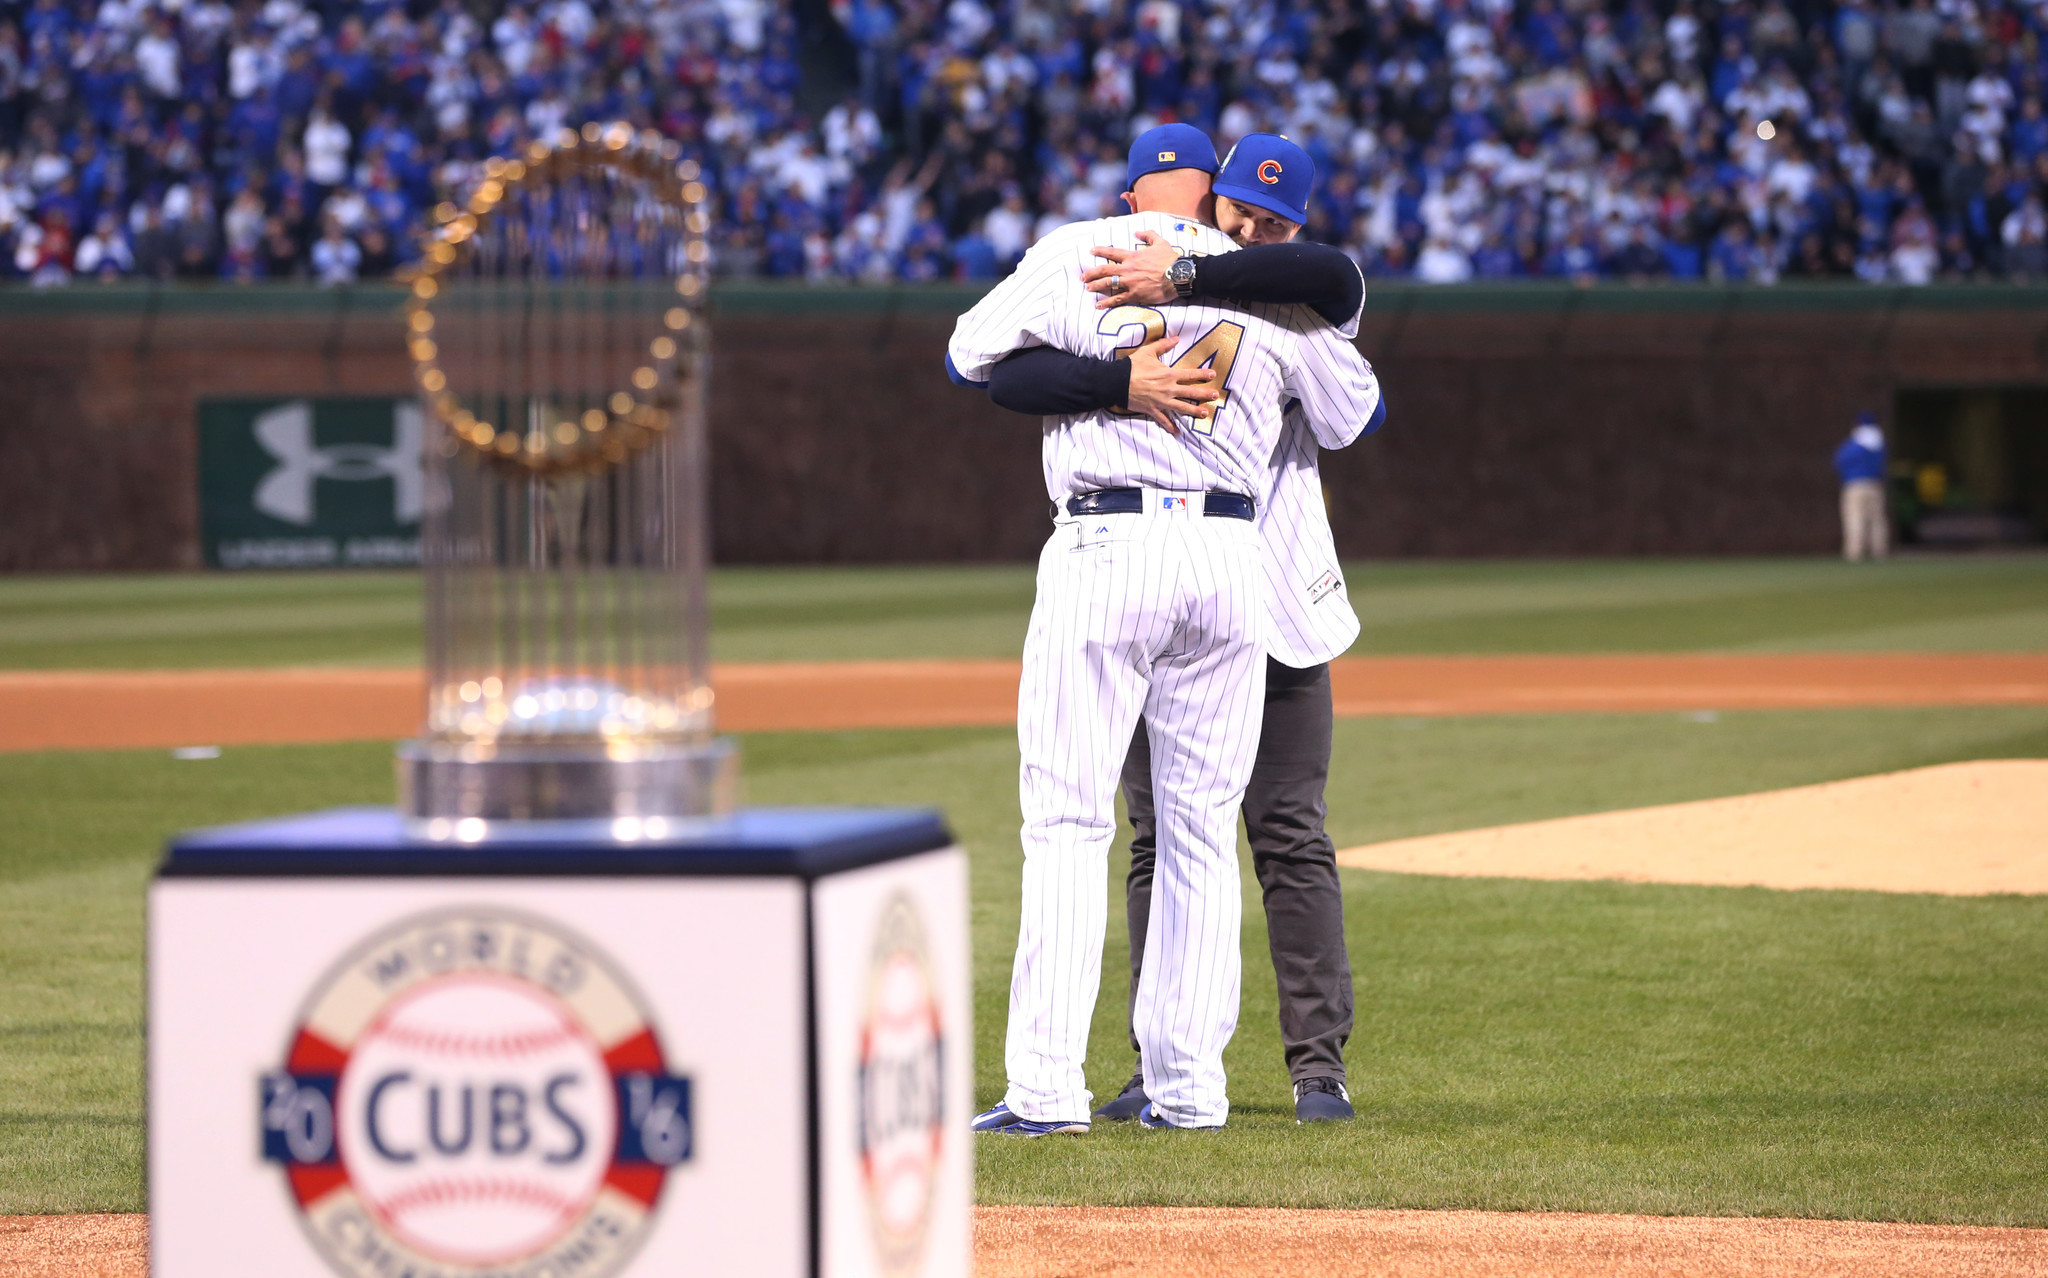 Ct-david-ross-cubs-ring-ceremony-spt-0413-20170412